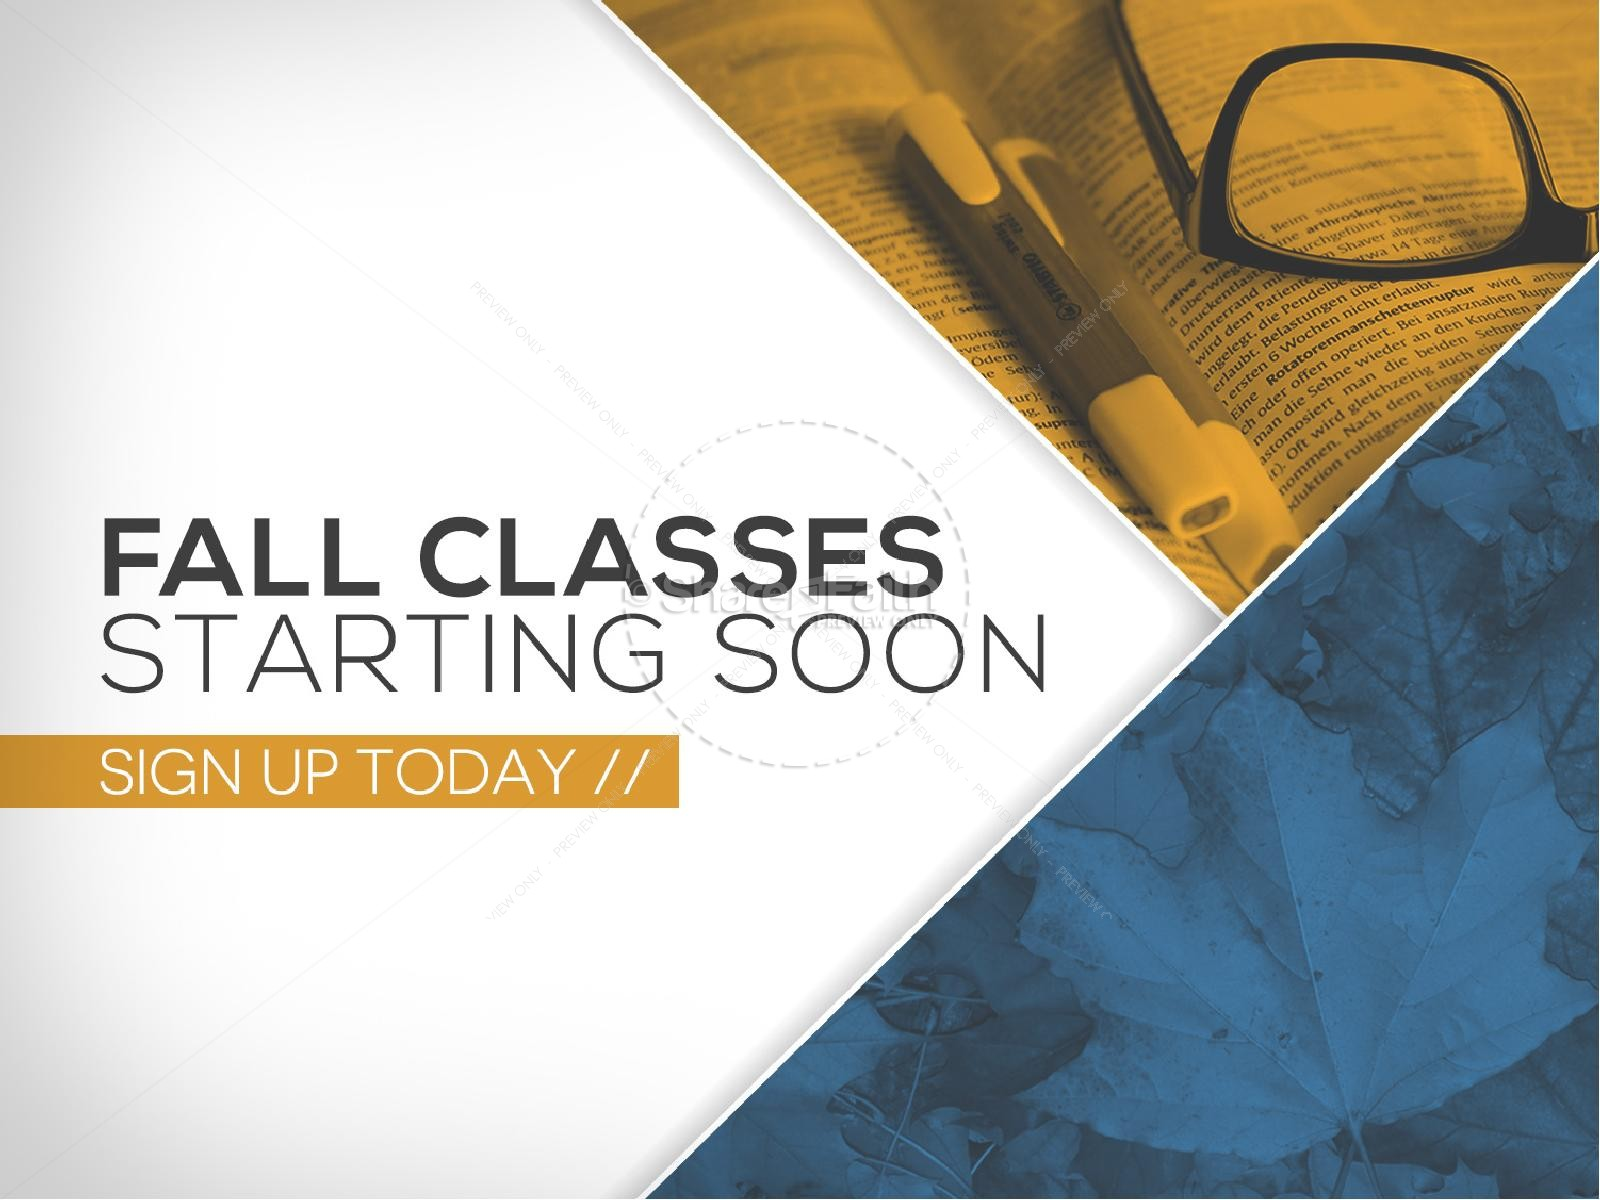 Fall Classes Starting Ministry PowerPoint